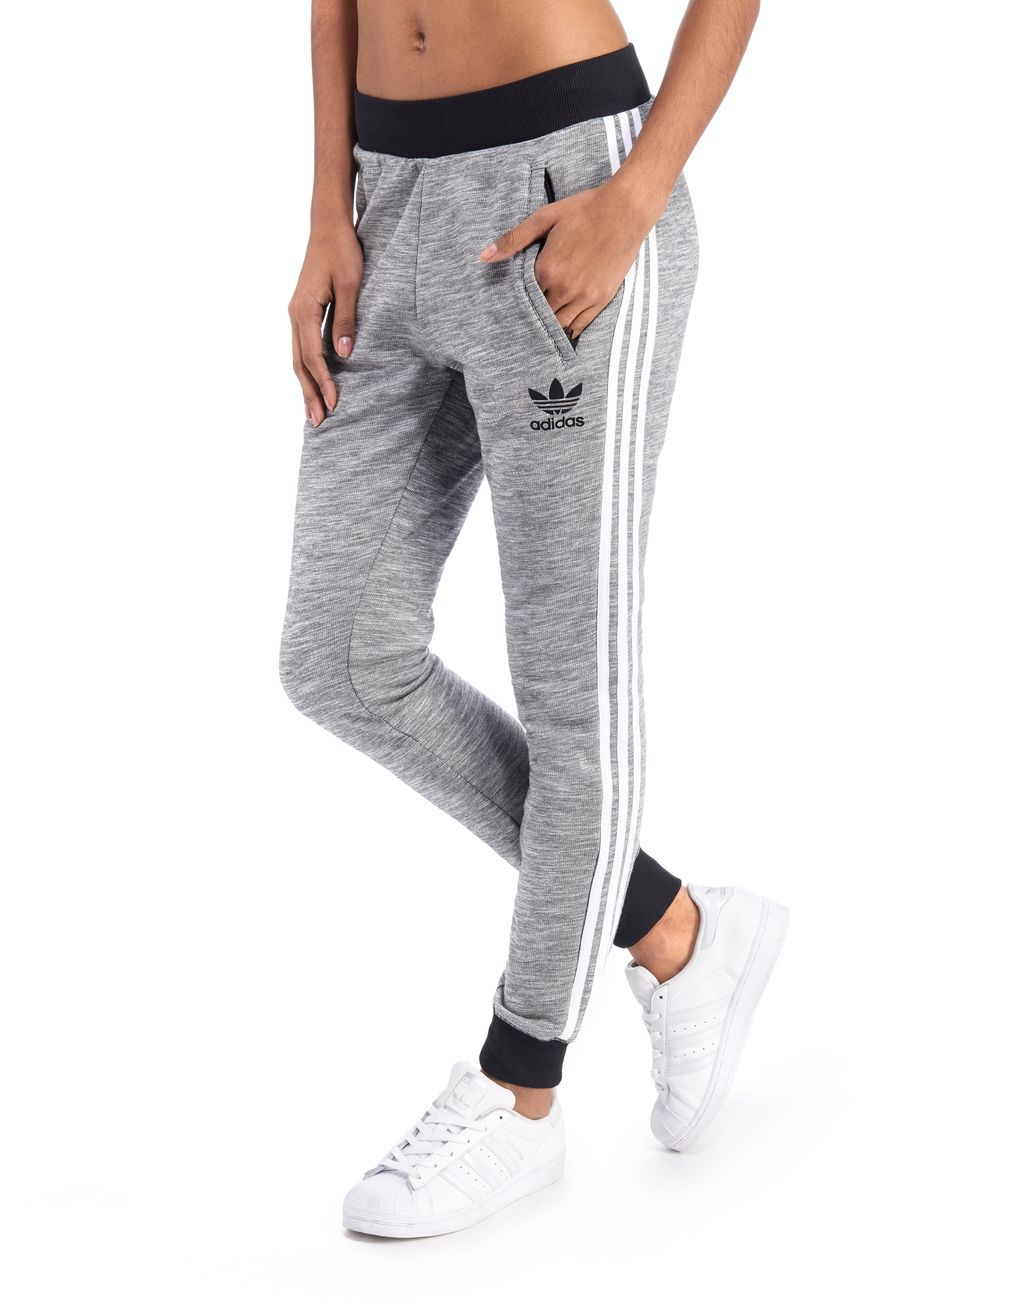 3617444380 Supergirl Waffle Track Pants - Only At Jd - JD Sports